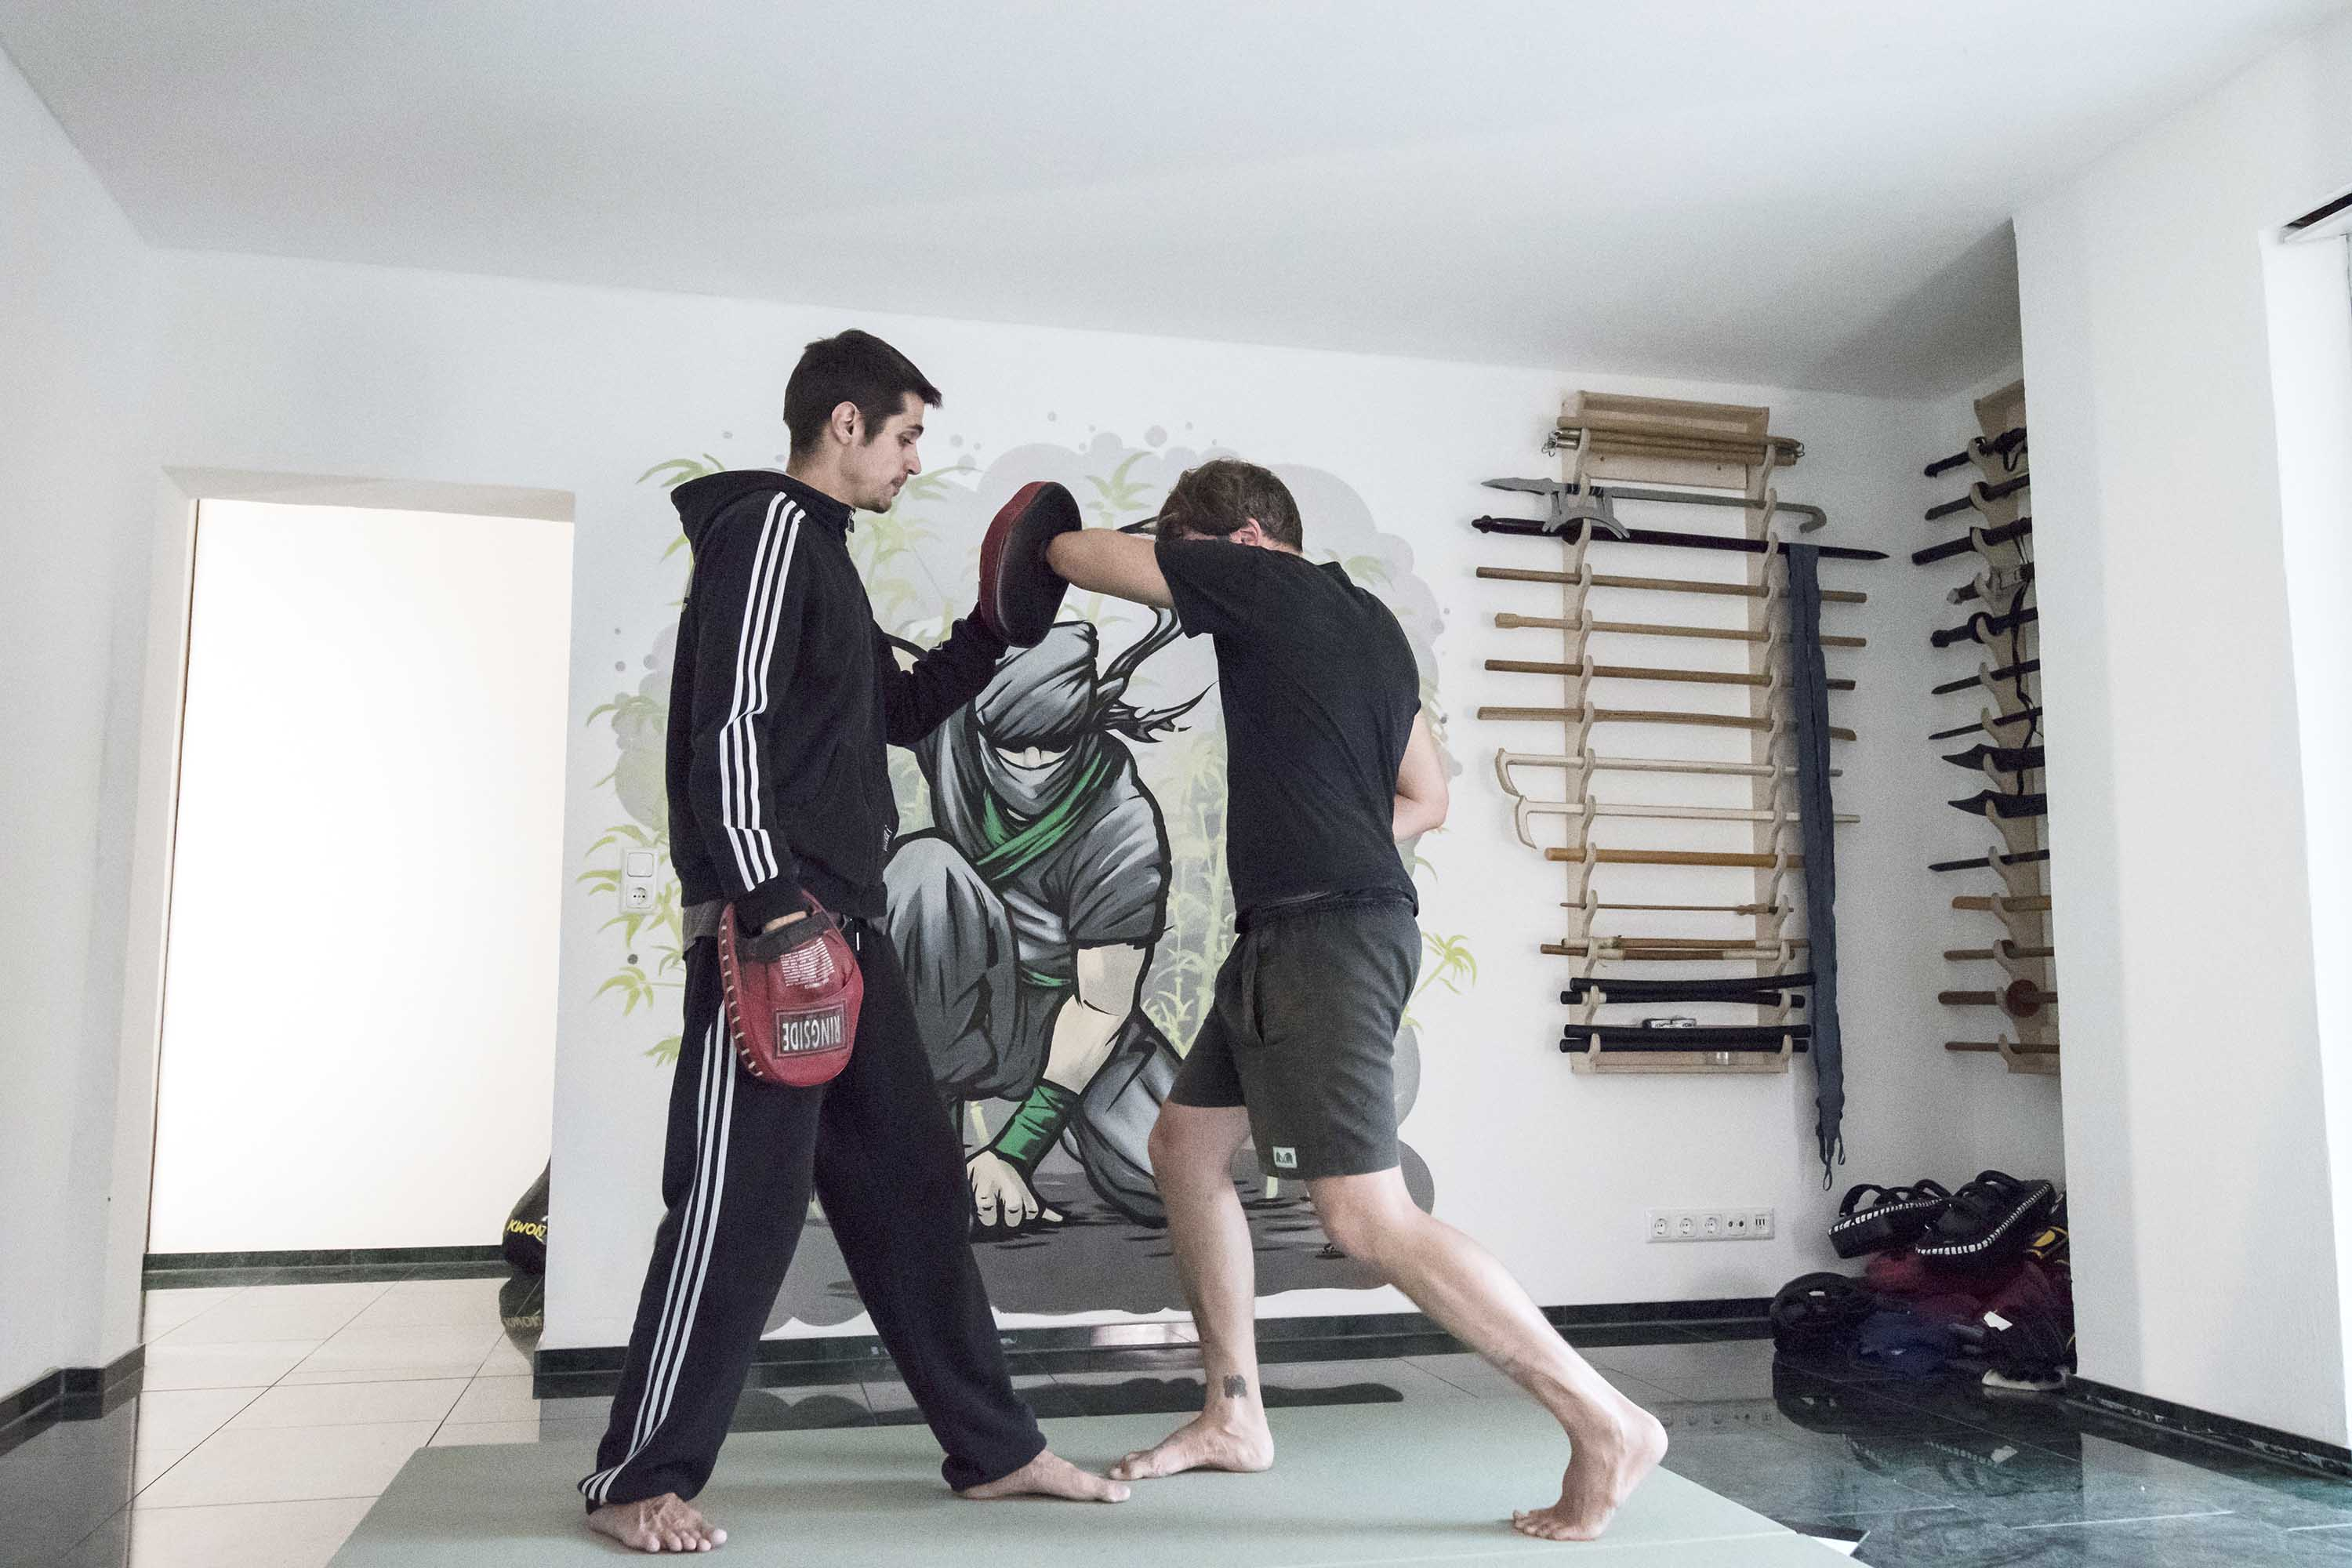 RONIN_DOJO_Traditionelles_thaiboxen_Training_05